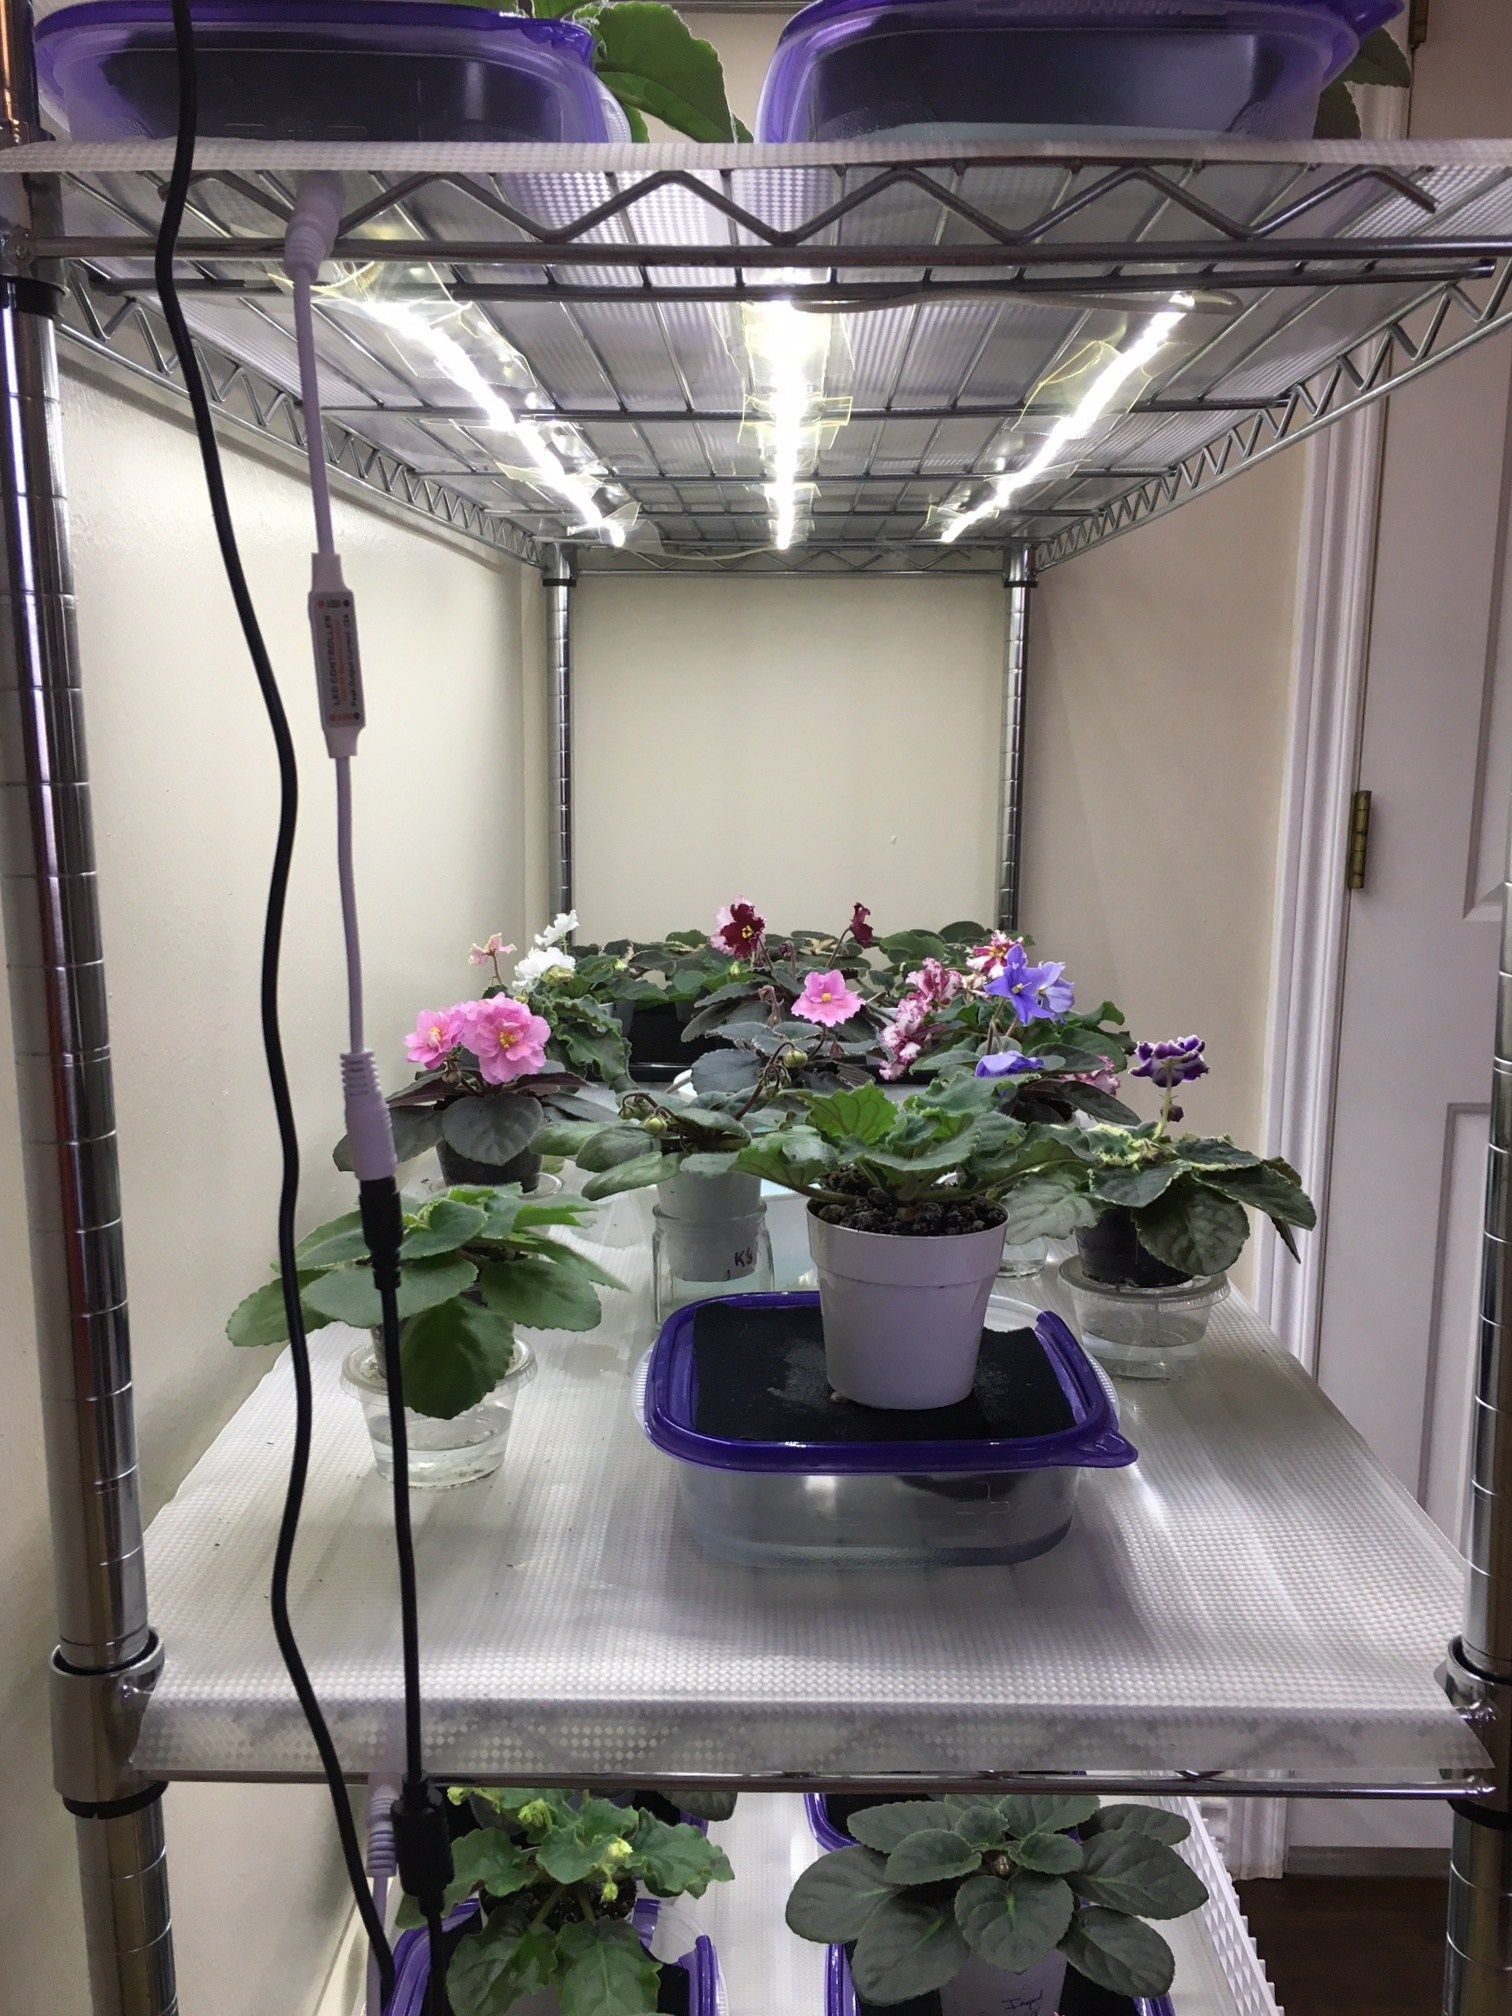 How To Grow Plants with LED Lights Grow lights for